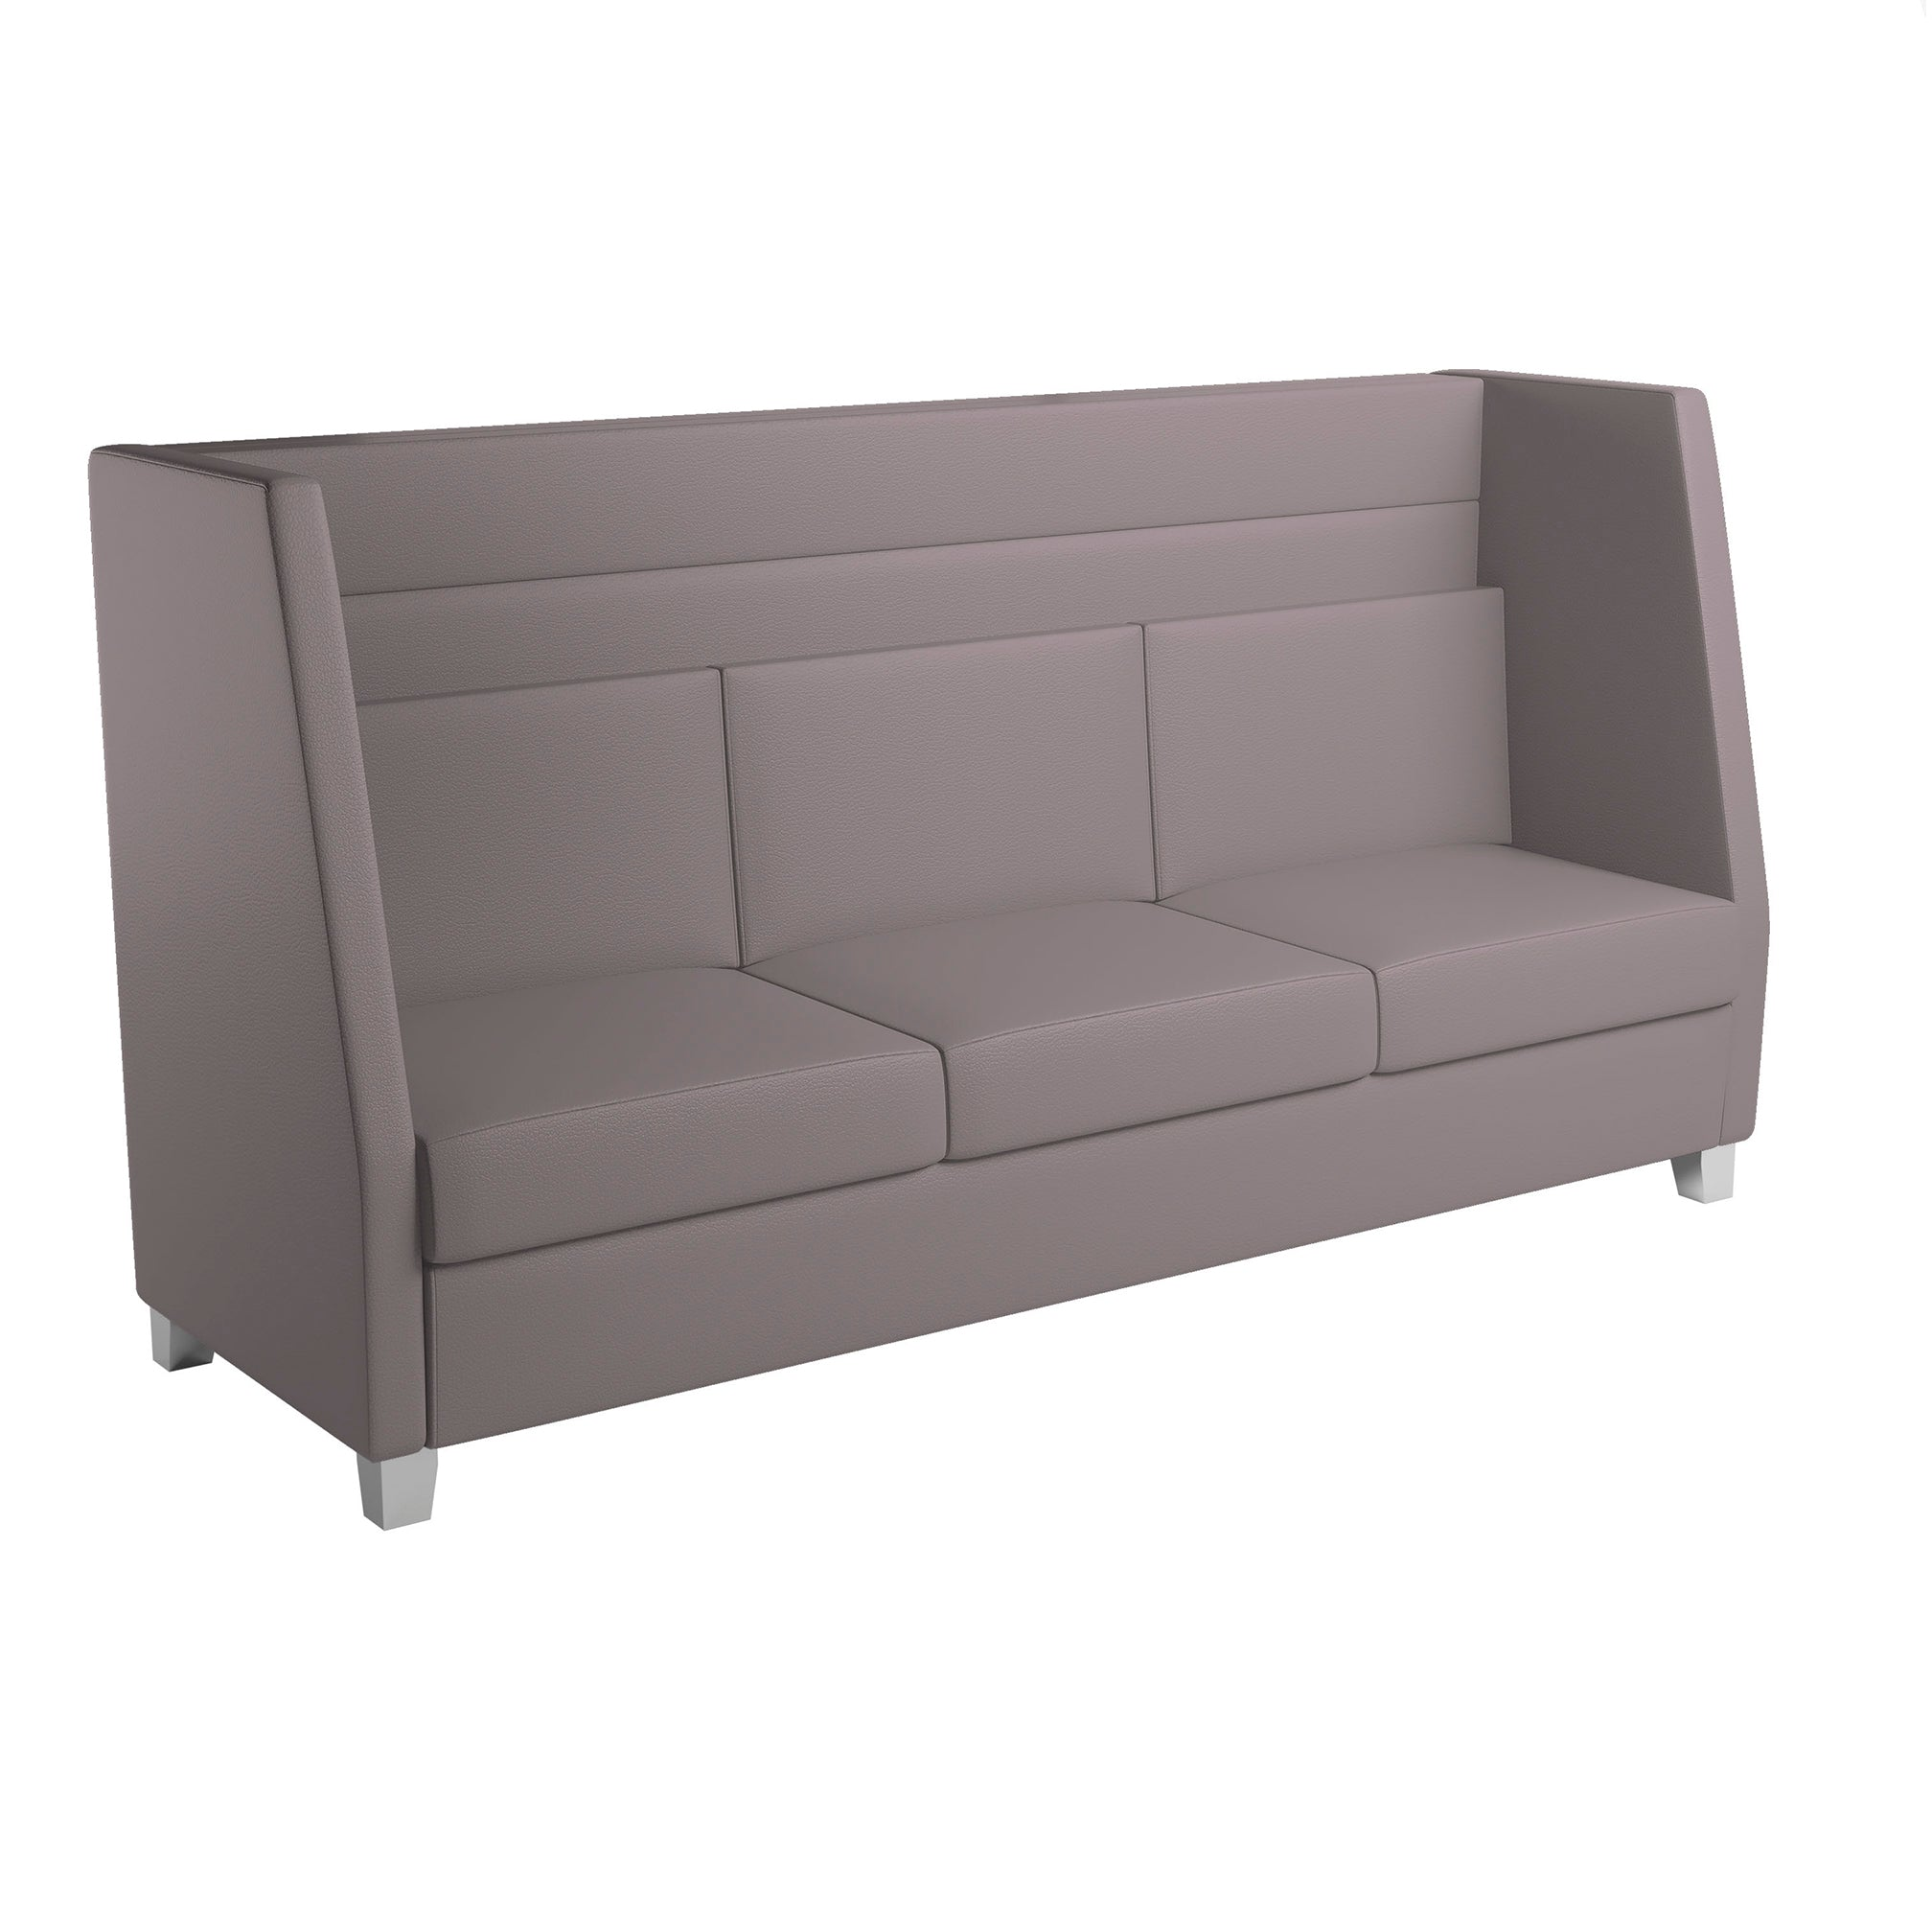 Trullo Three Seat Lounge Sofa